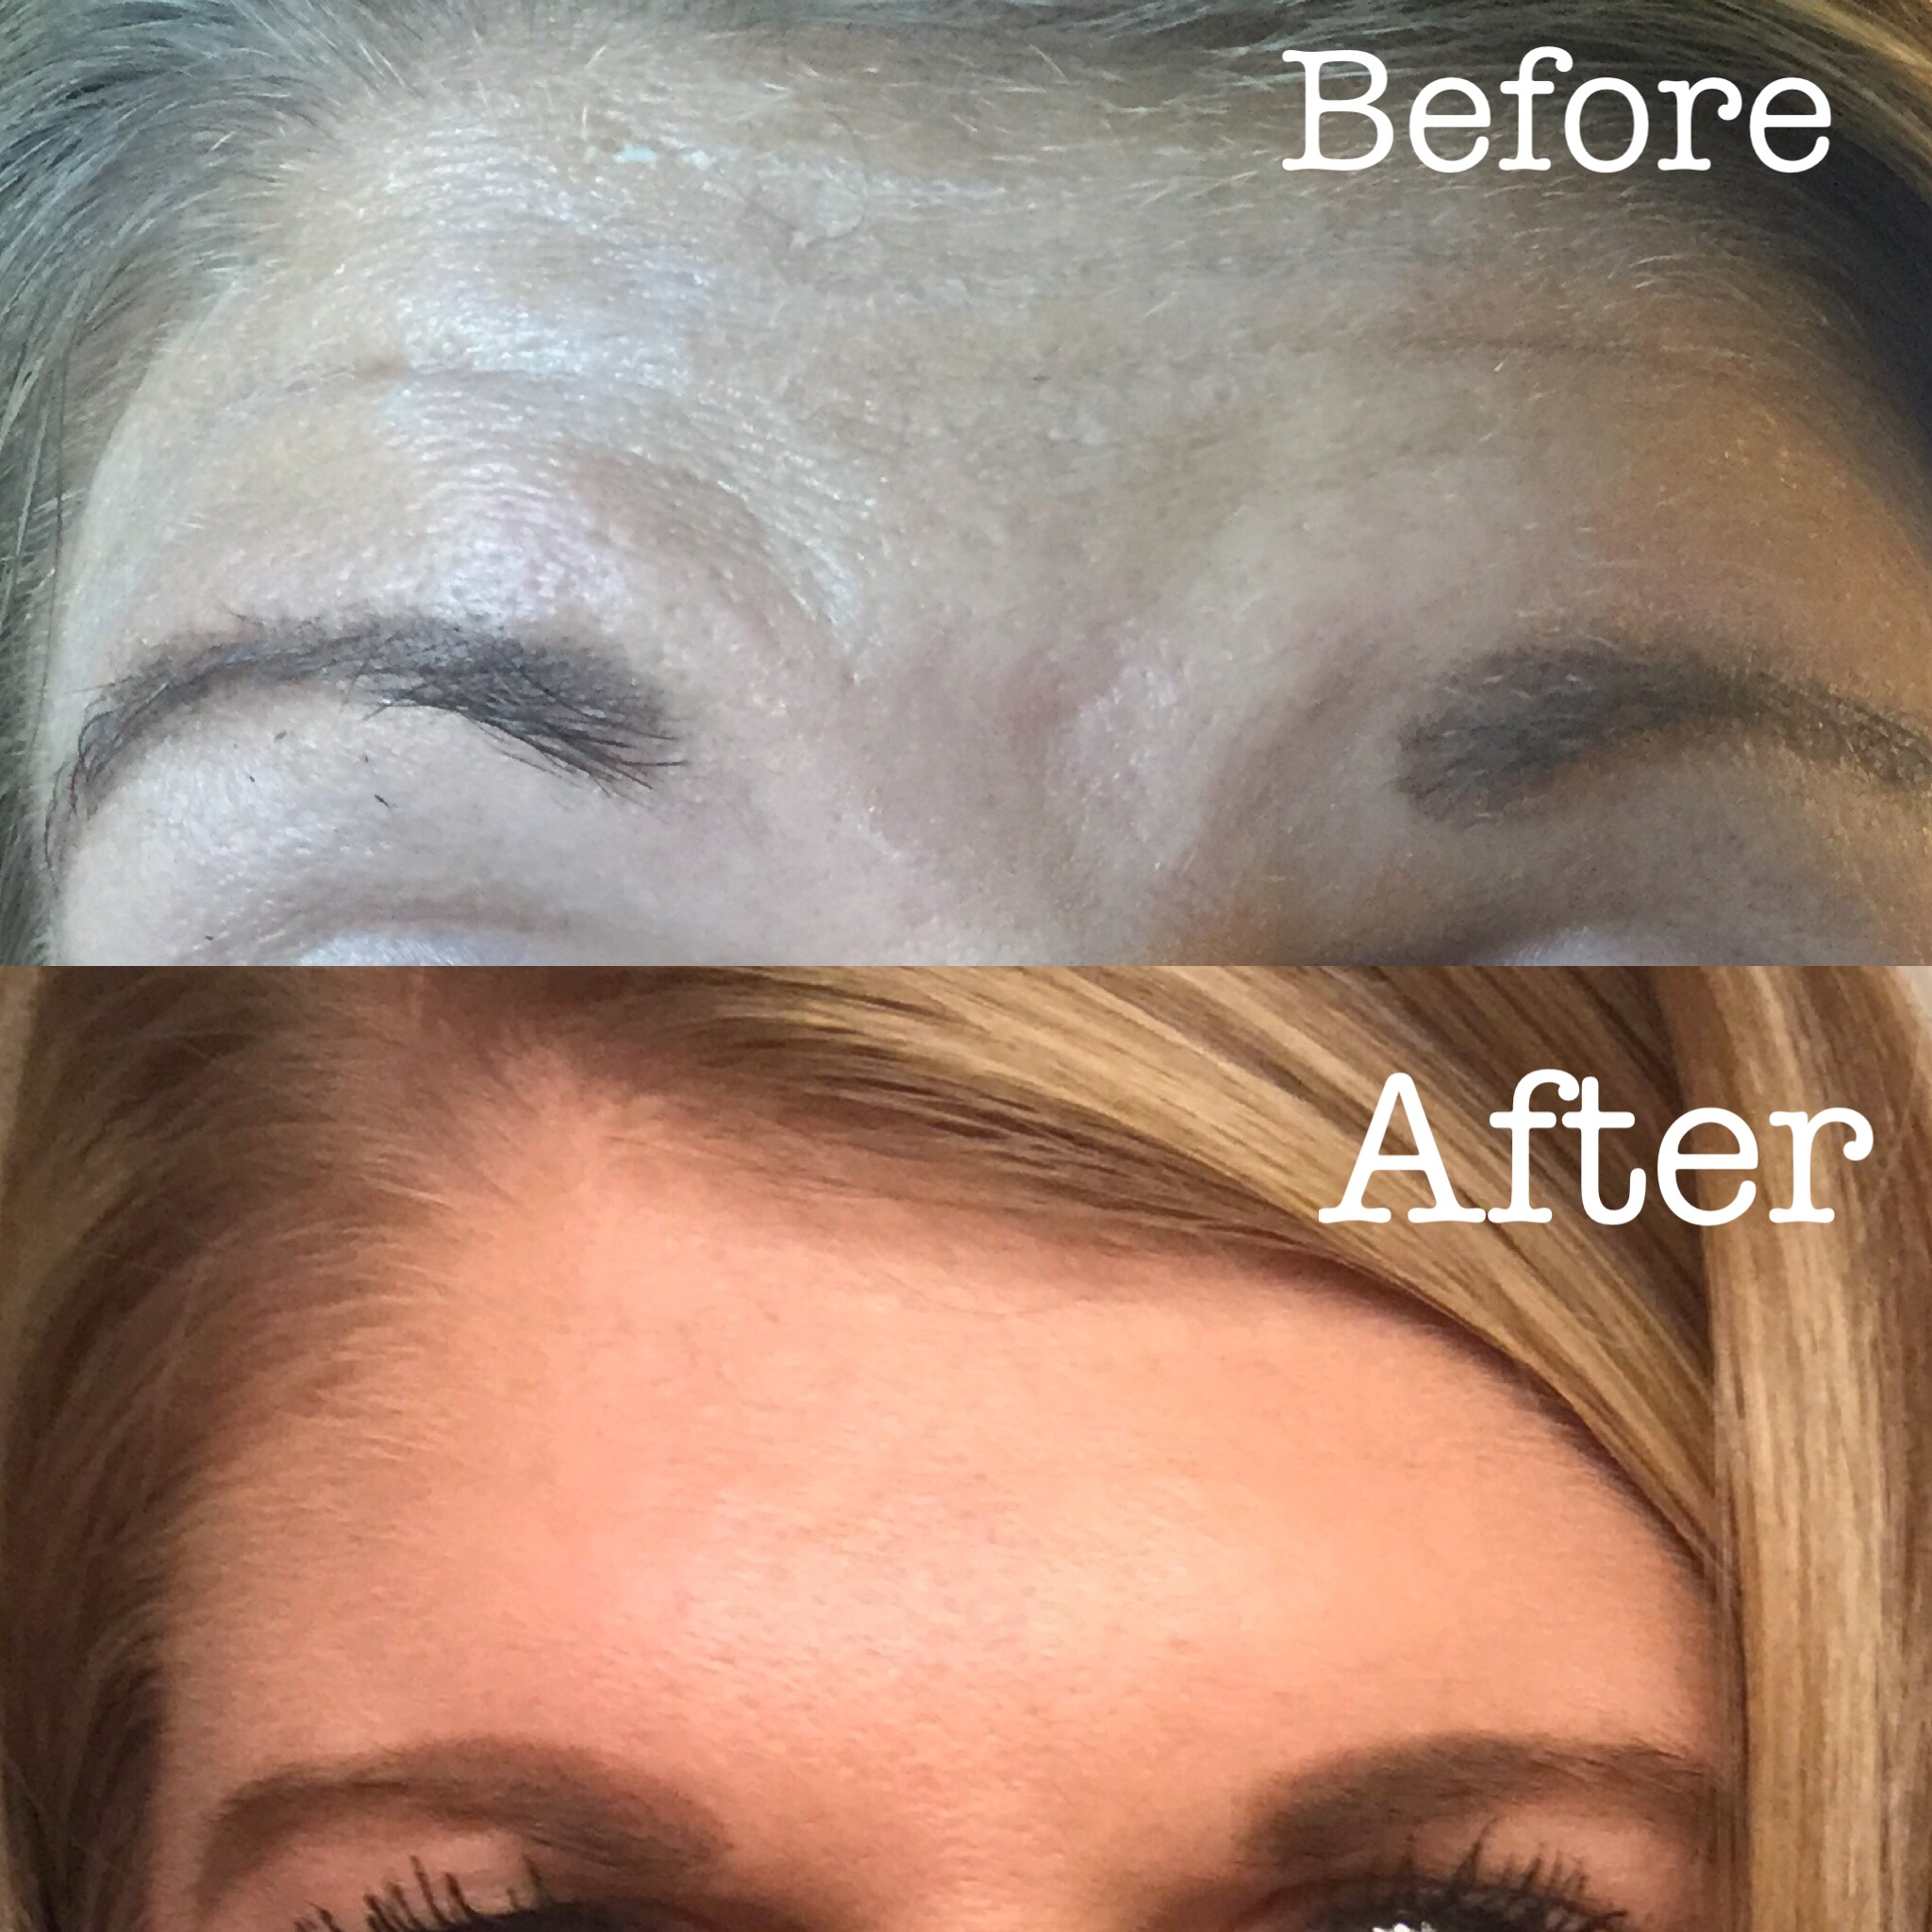 Botox for aging prevention!